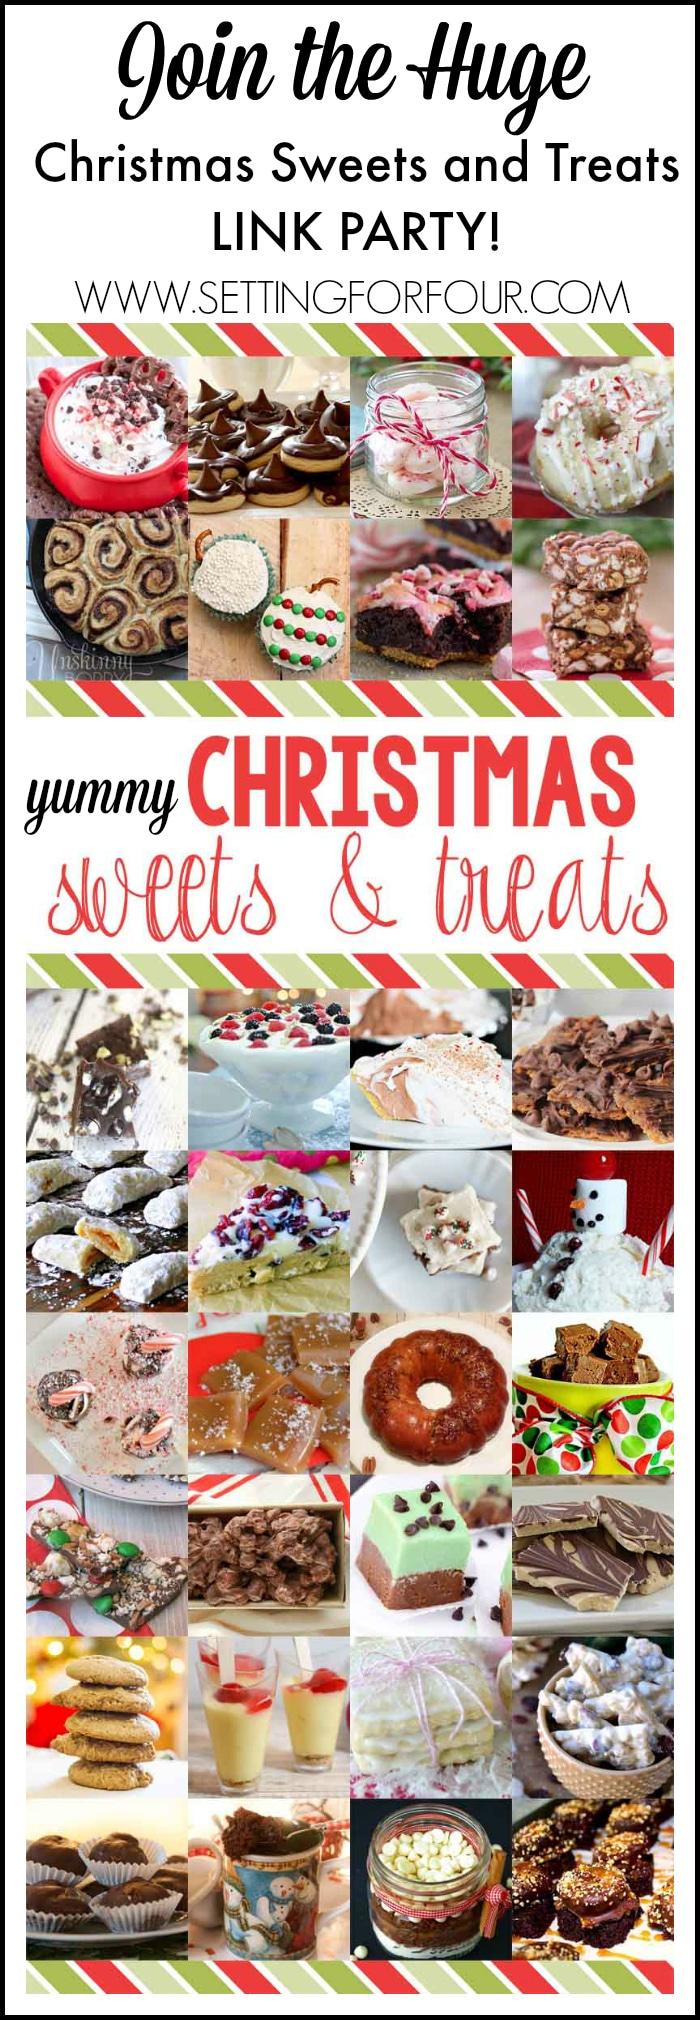 Join in the HUGE Christmas Sweets and Treats recipe link party! Candy, Desserts and sweets! www.settingforfour.com